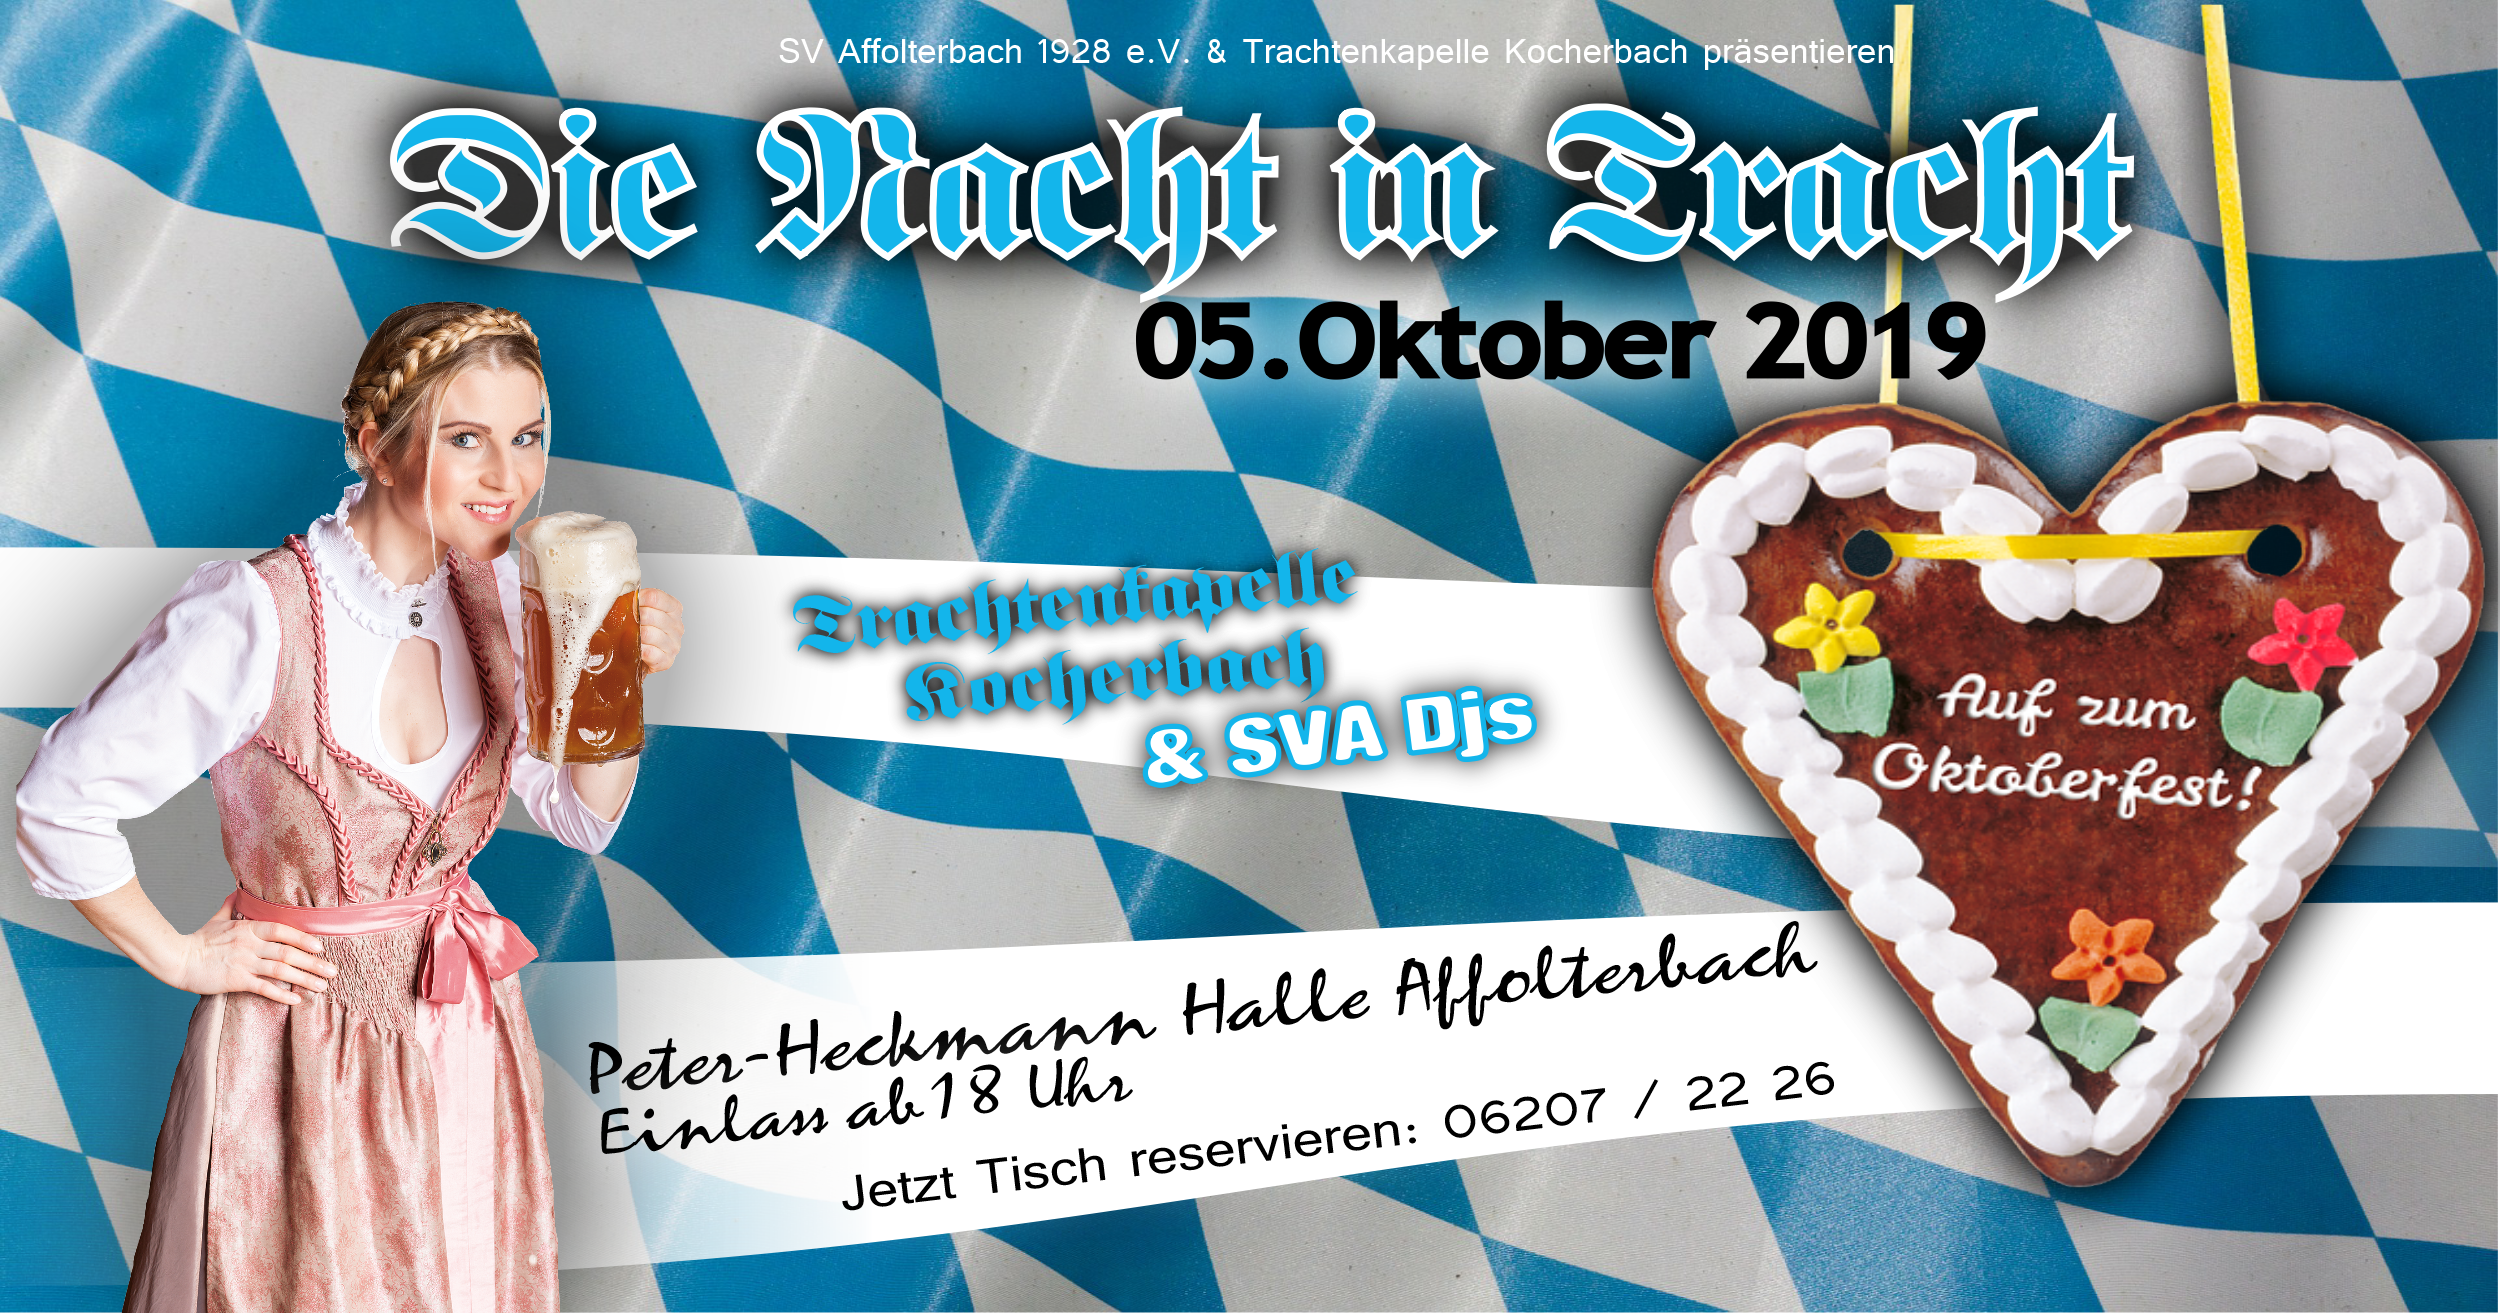 Nacht in Tracht Affolterbach 2019